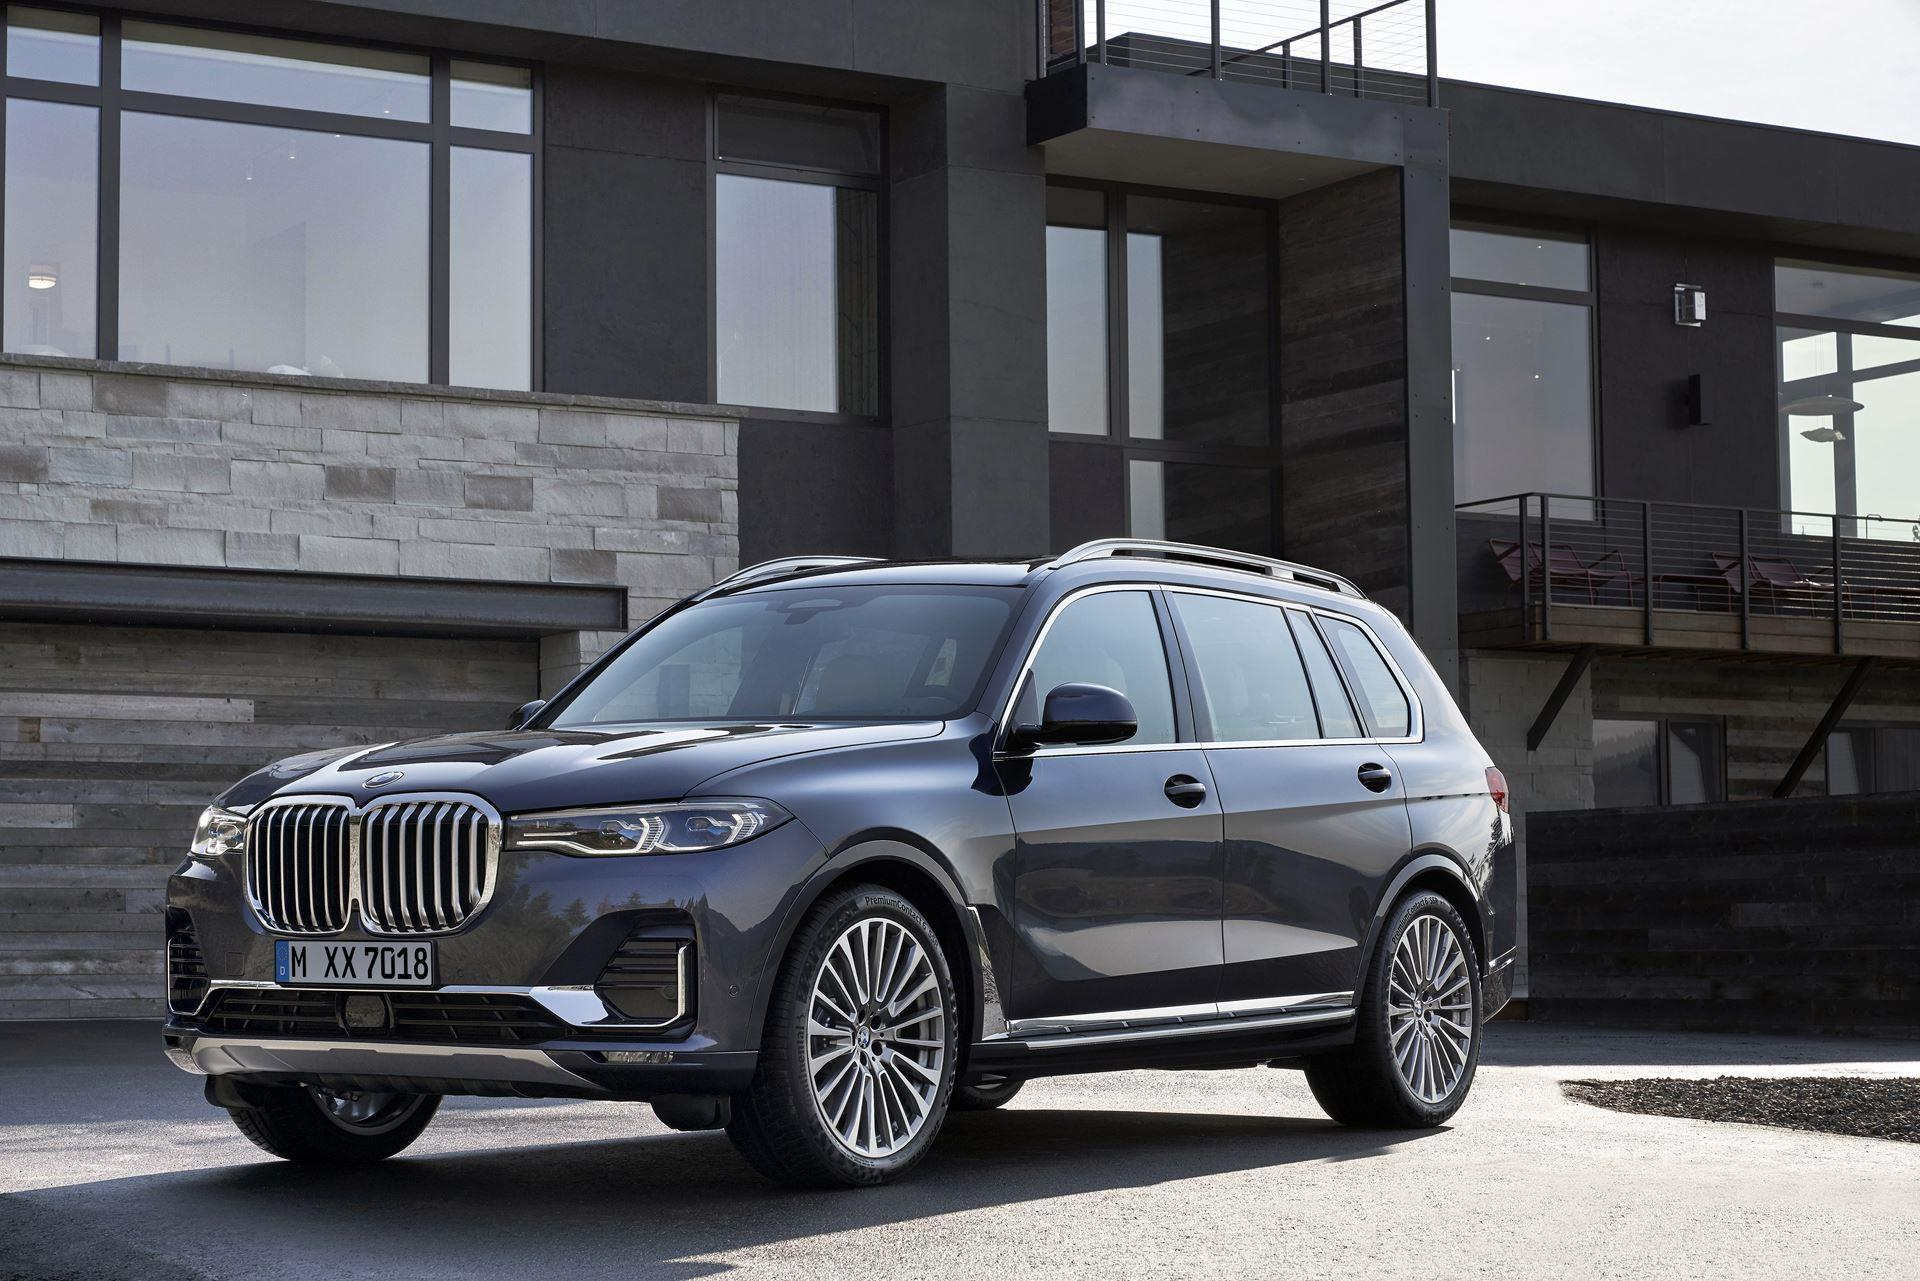 2019 BMW X7 News and Information | conceptcarz.com